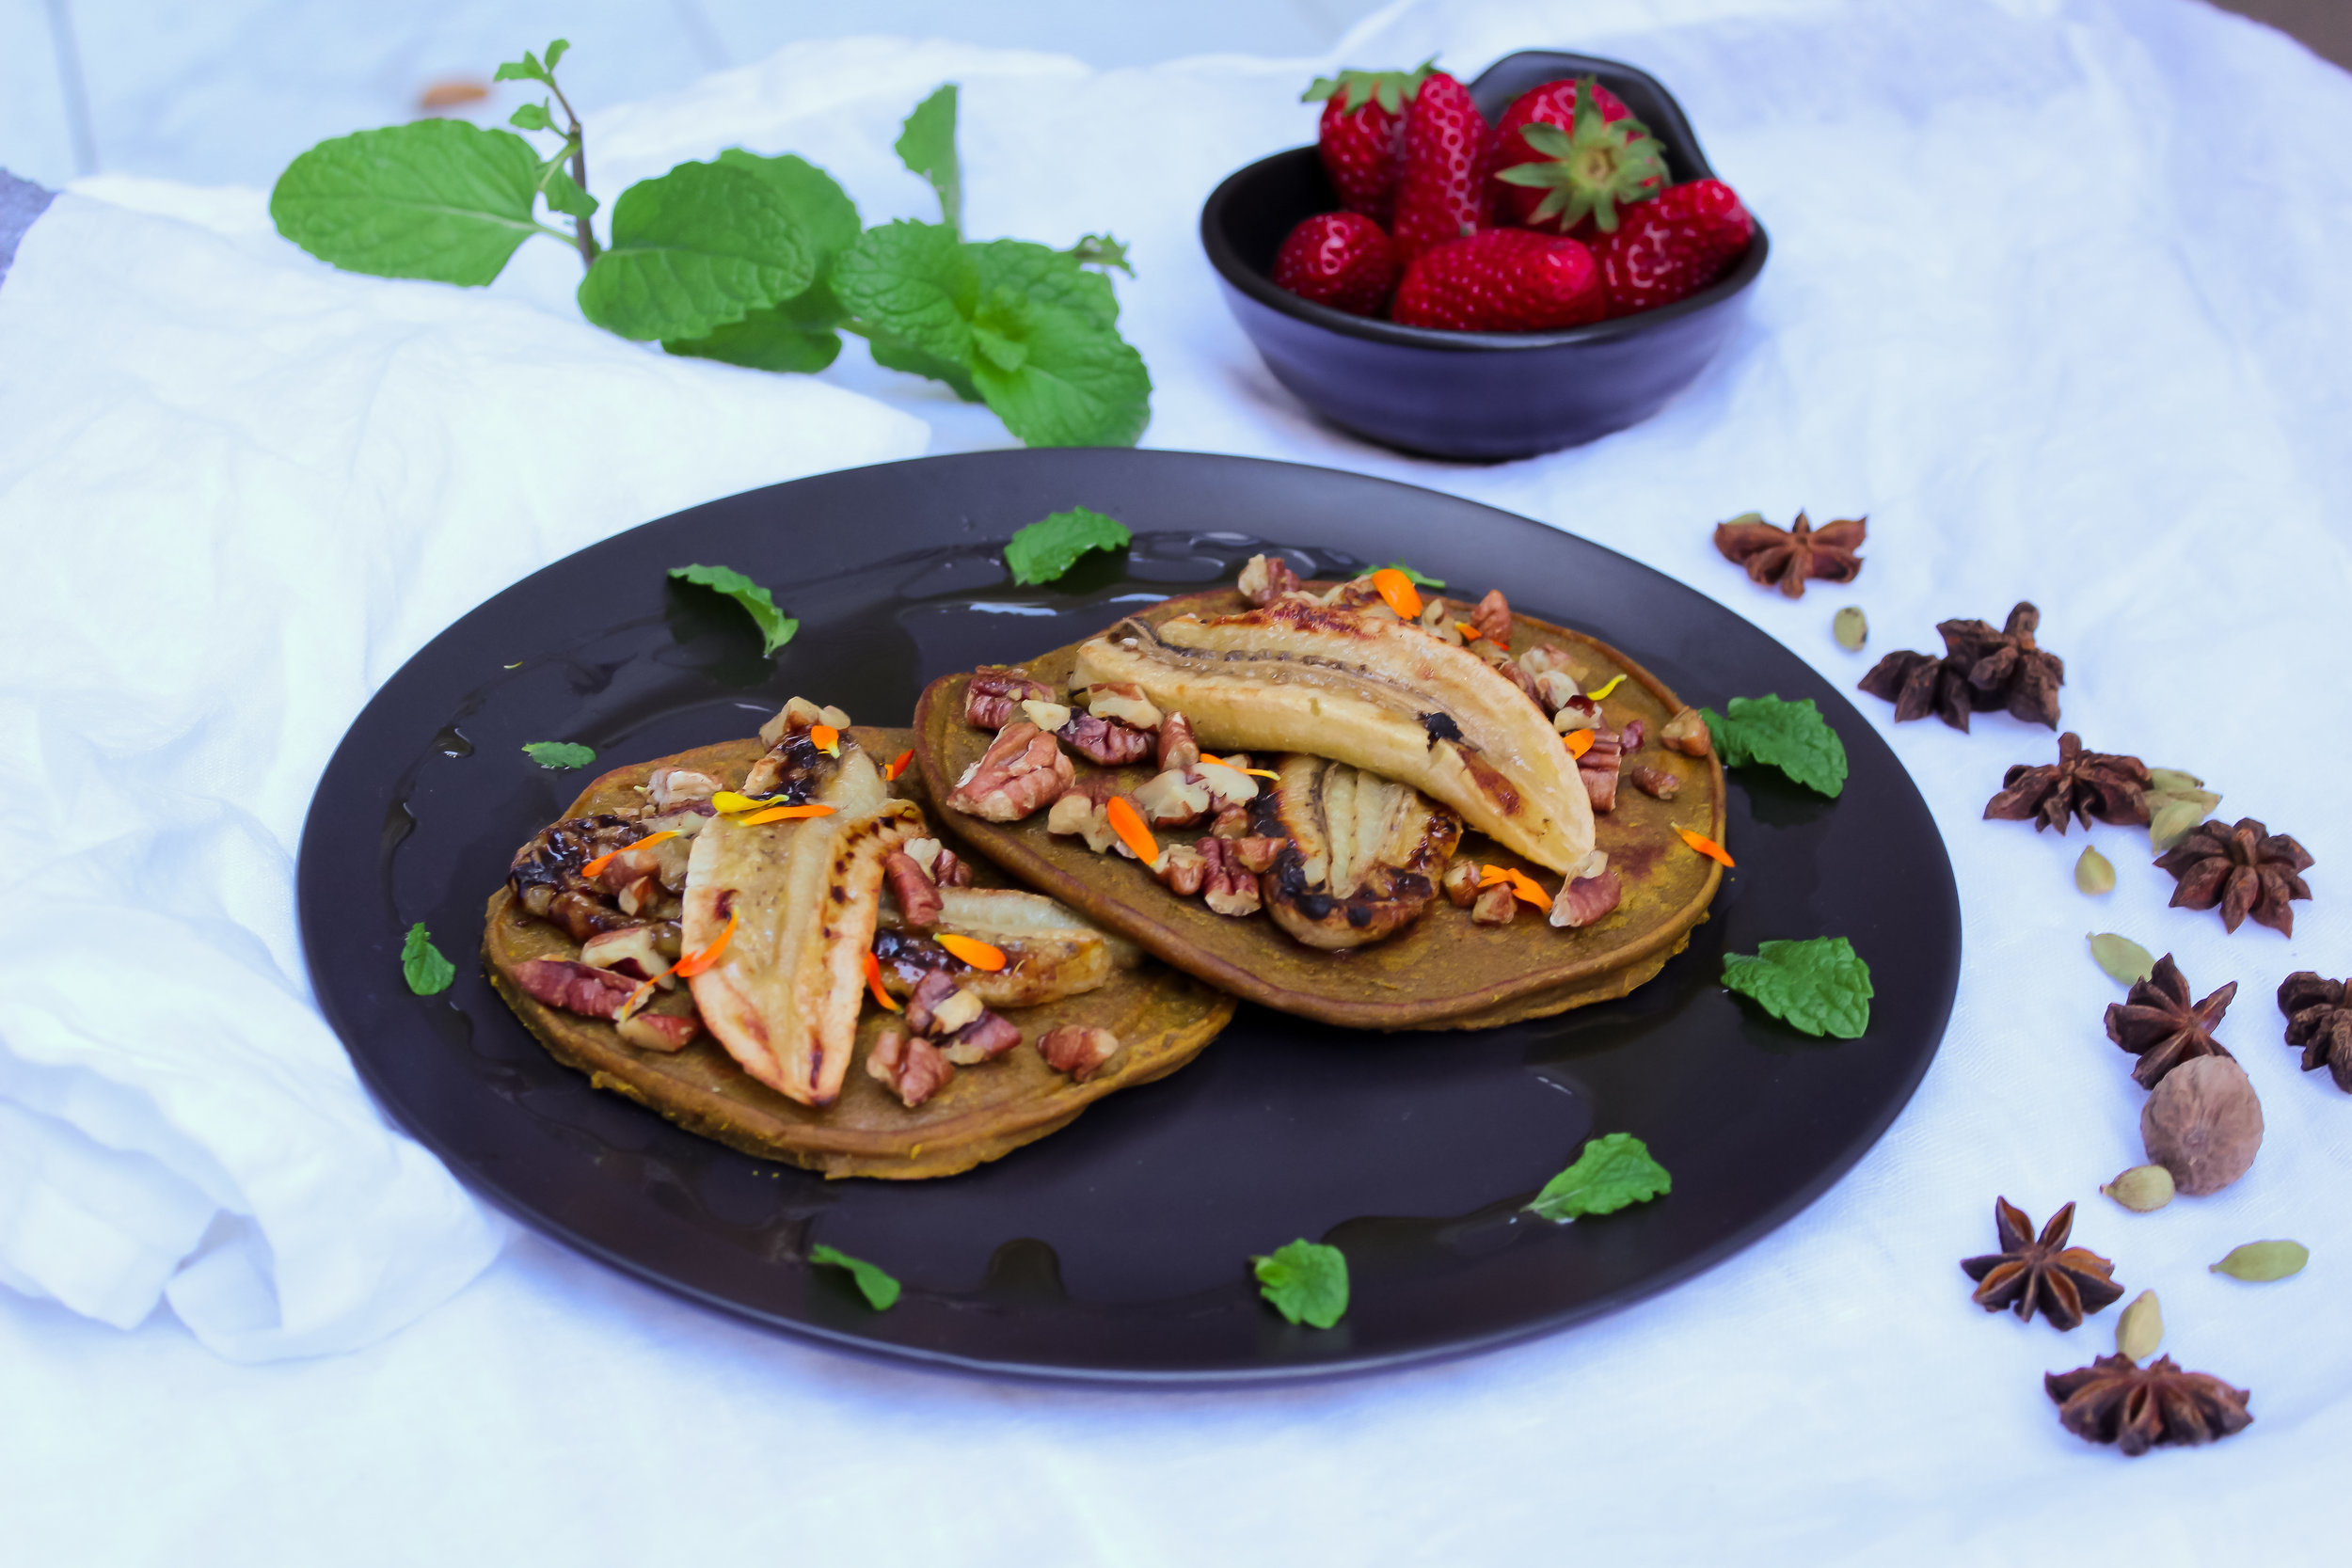 SPICED PUMPKIN PANCAKES WITH GRILLED BANANA AND CANDIED PECANS | vegan, dairy free, gluten free, egg free, healthy  , easy, plant based  , refined sugar free, recoveringraw.com, recovering raw